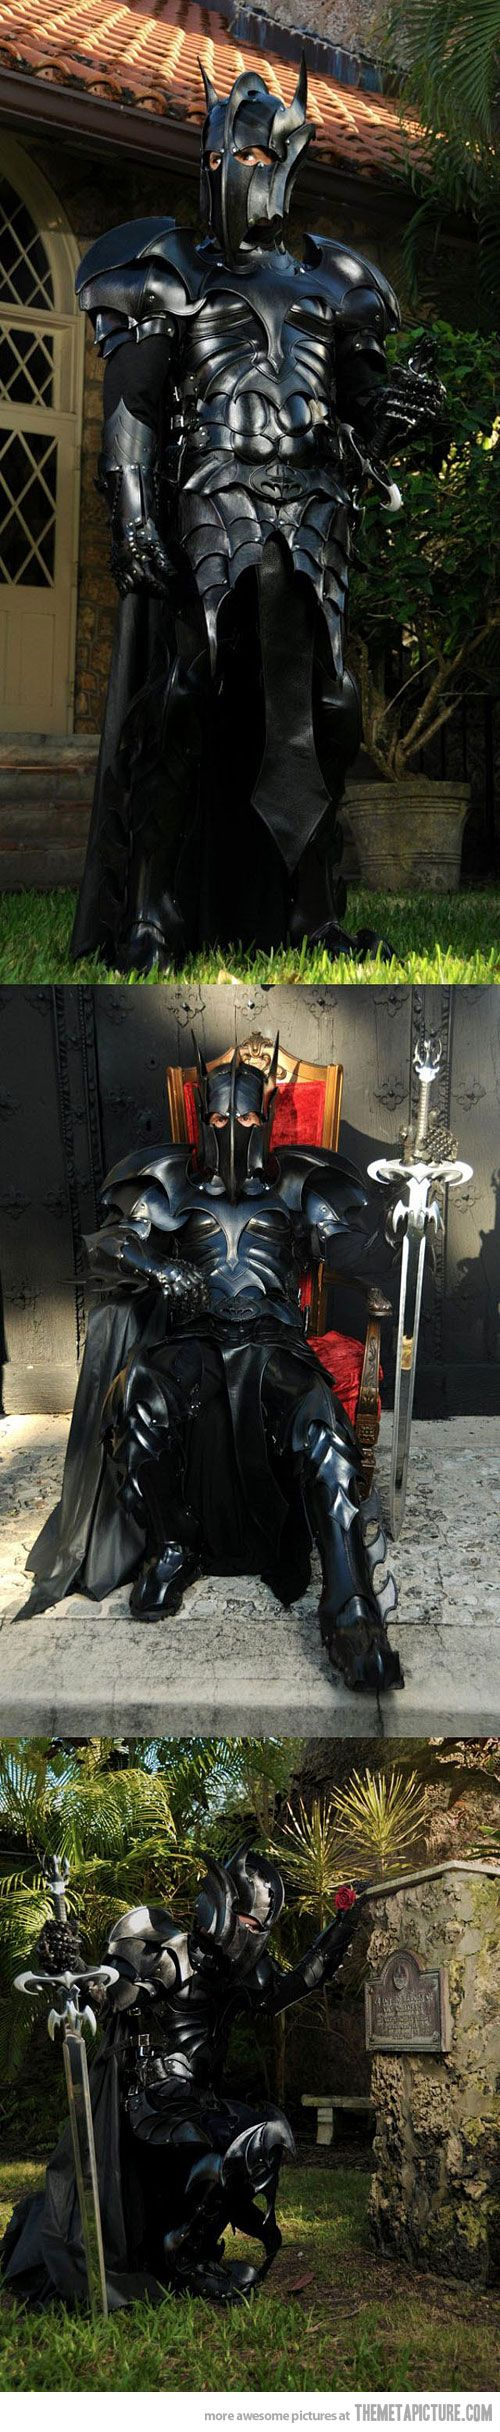 Medieval Batman Armor - What call ye thy n self, kind Sir? Sir Man Bat?